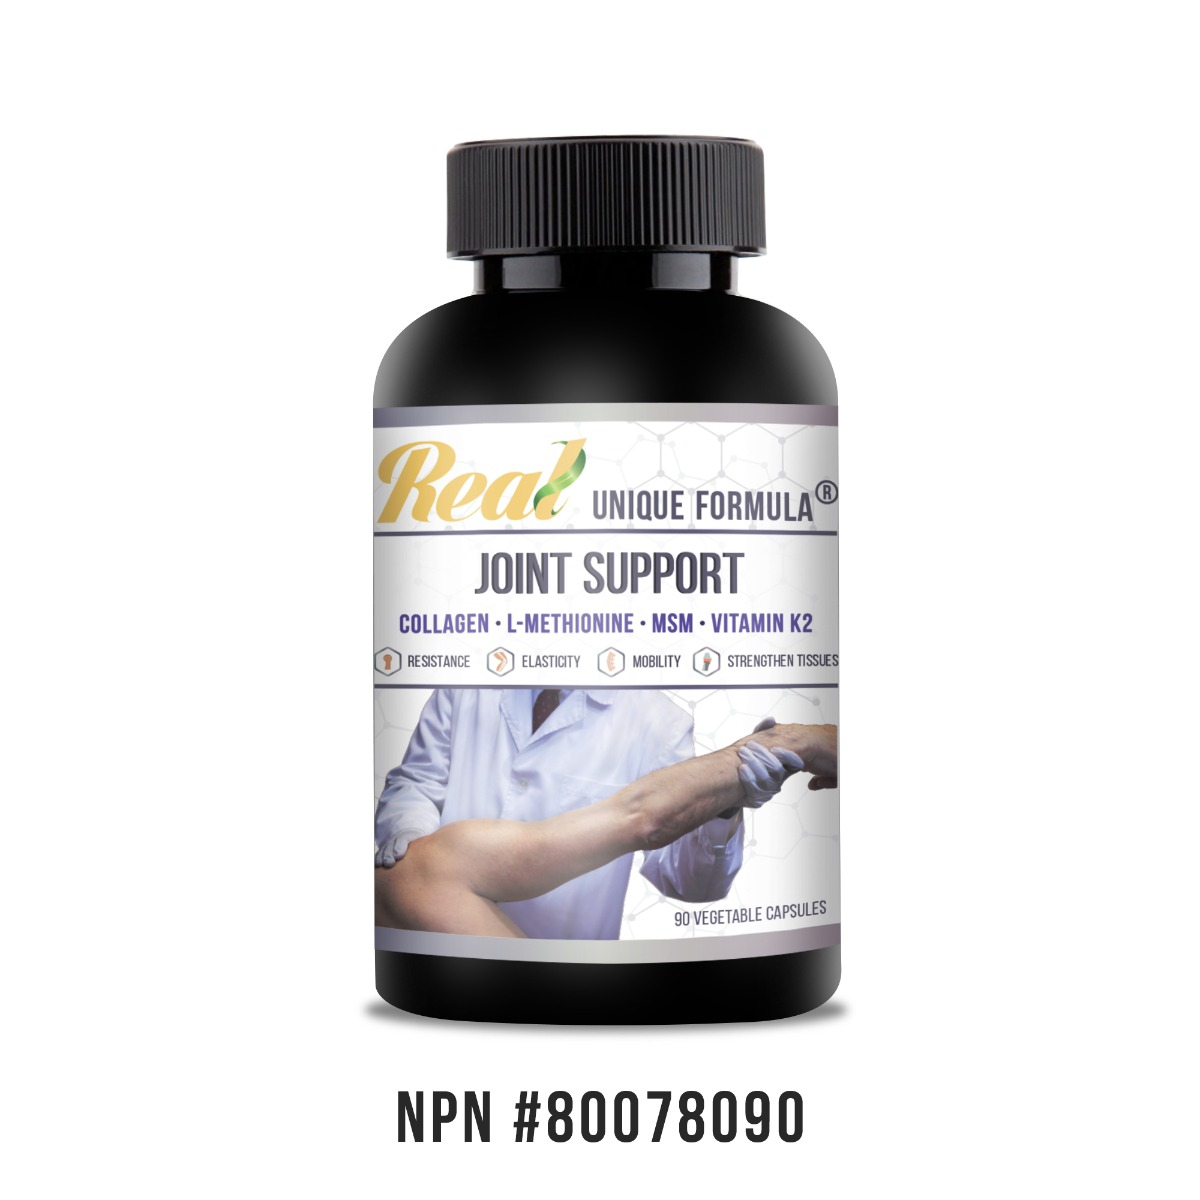 Real • Unique Joint Support Formula-0